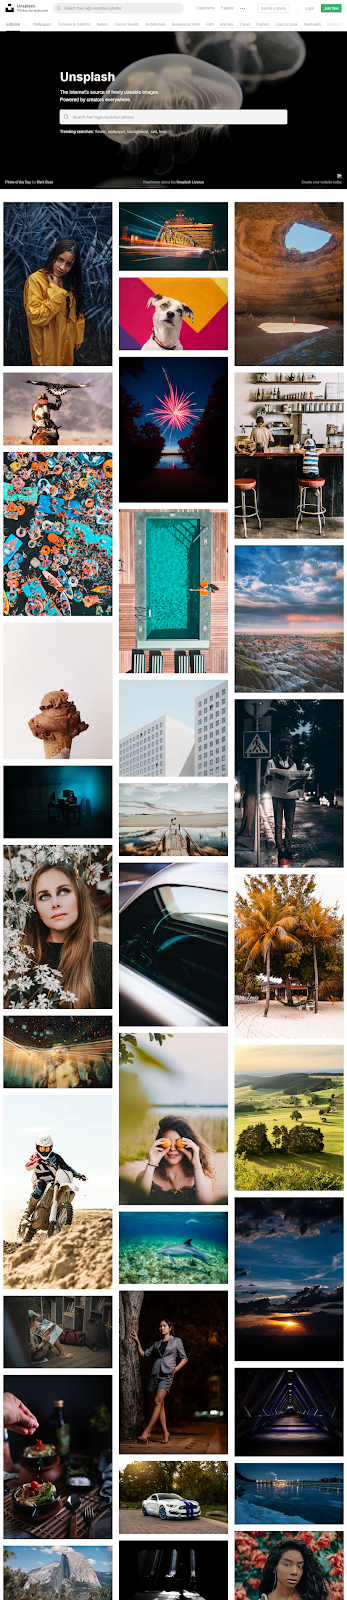 Unsplash Review - The Best Provider Of Free Images?